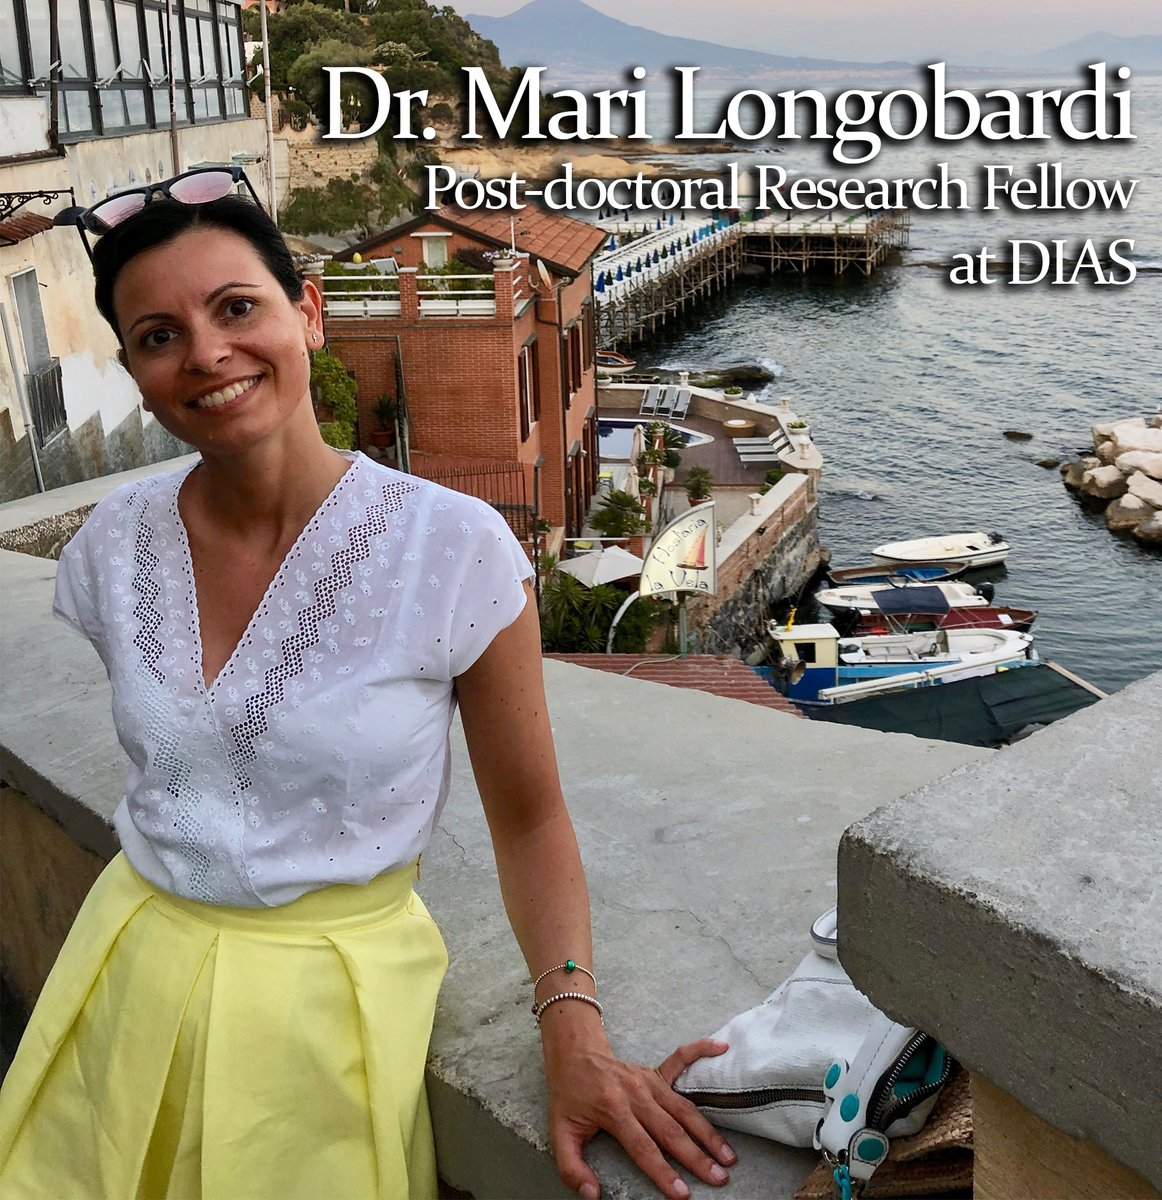 test Twitter Media - What does DIAS mean to you? Listen to what Dr. Mari Longobardi, Post-doctoral Research Fellow at DIAS on the EUROVOLC project, has to say! https://t.co/dlxH620sVf